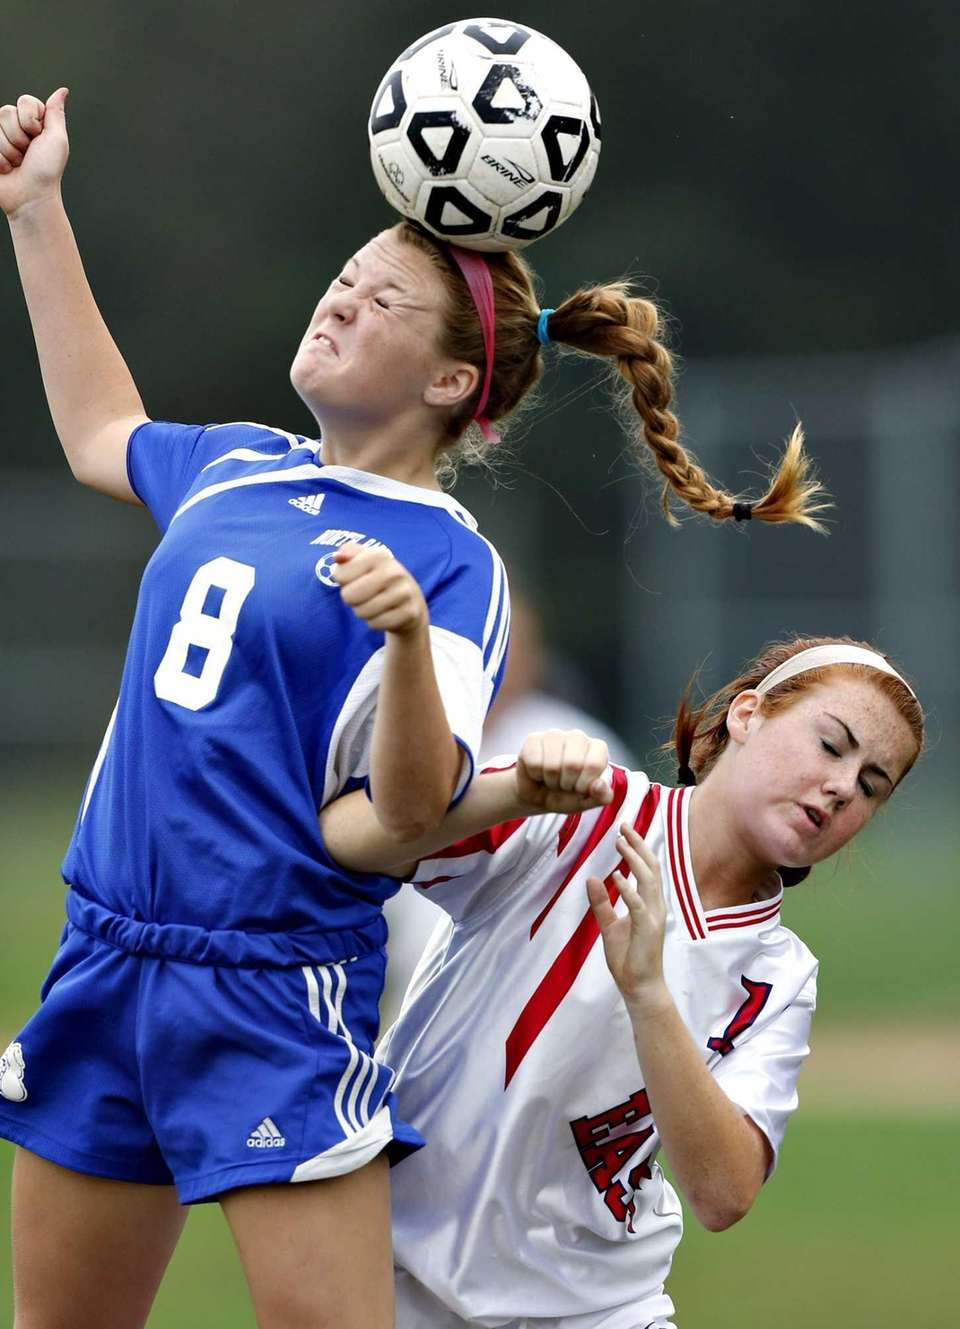 North Babylon's Dana Scheriff wins the header over